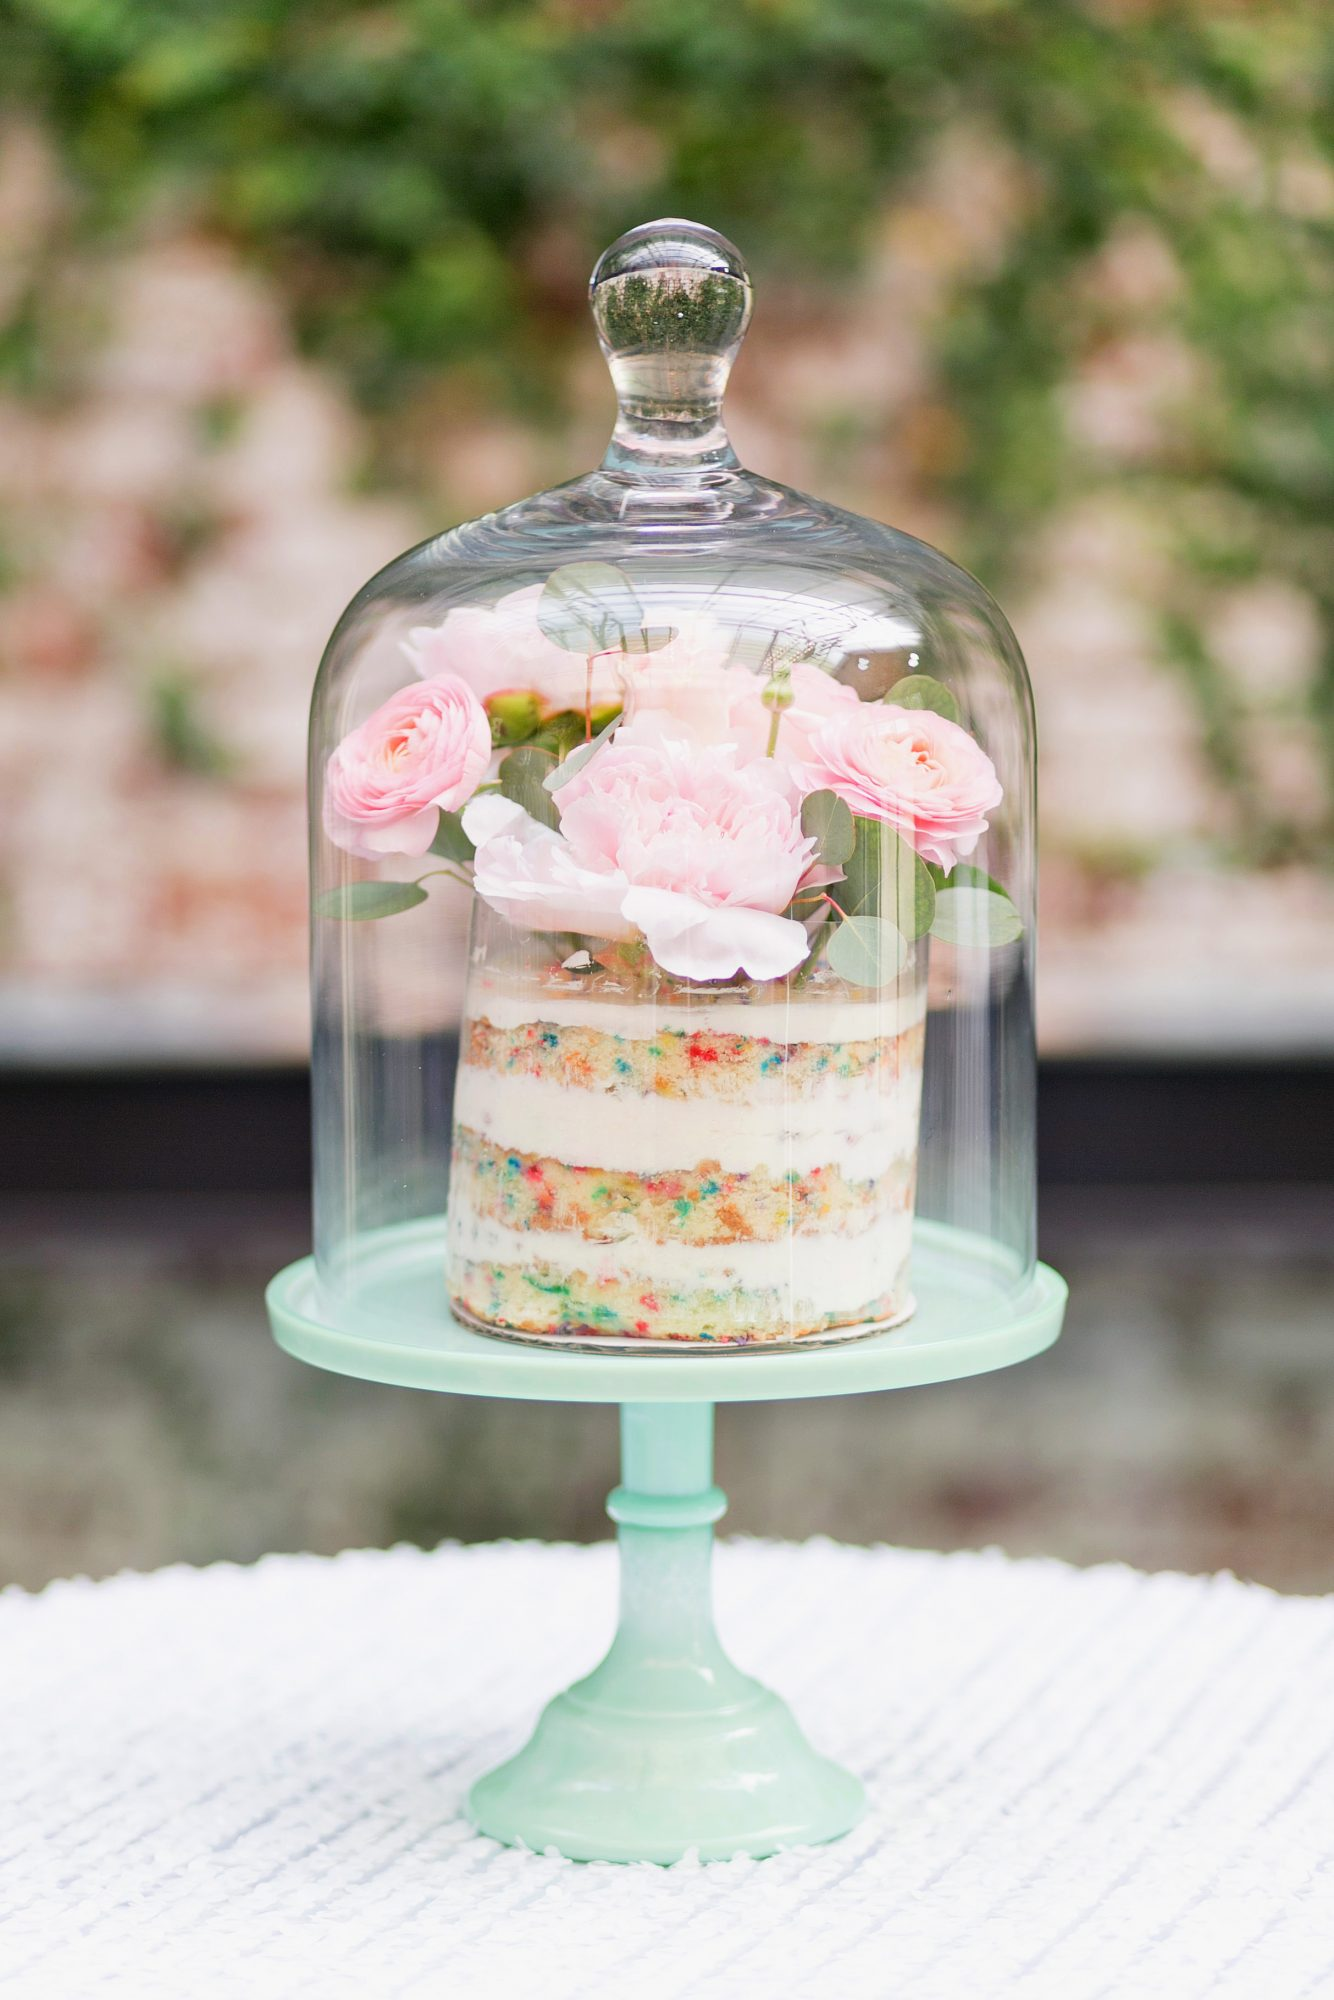 Cloche and Confettis